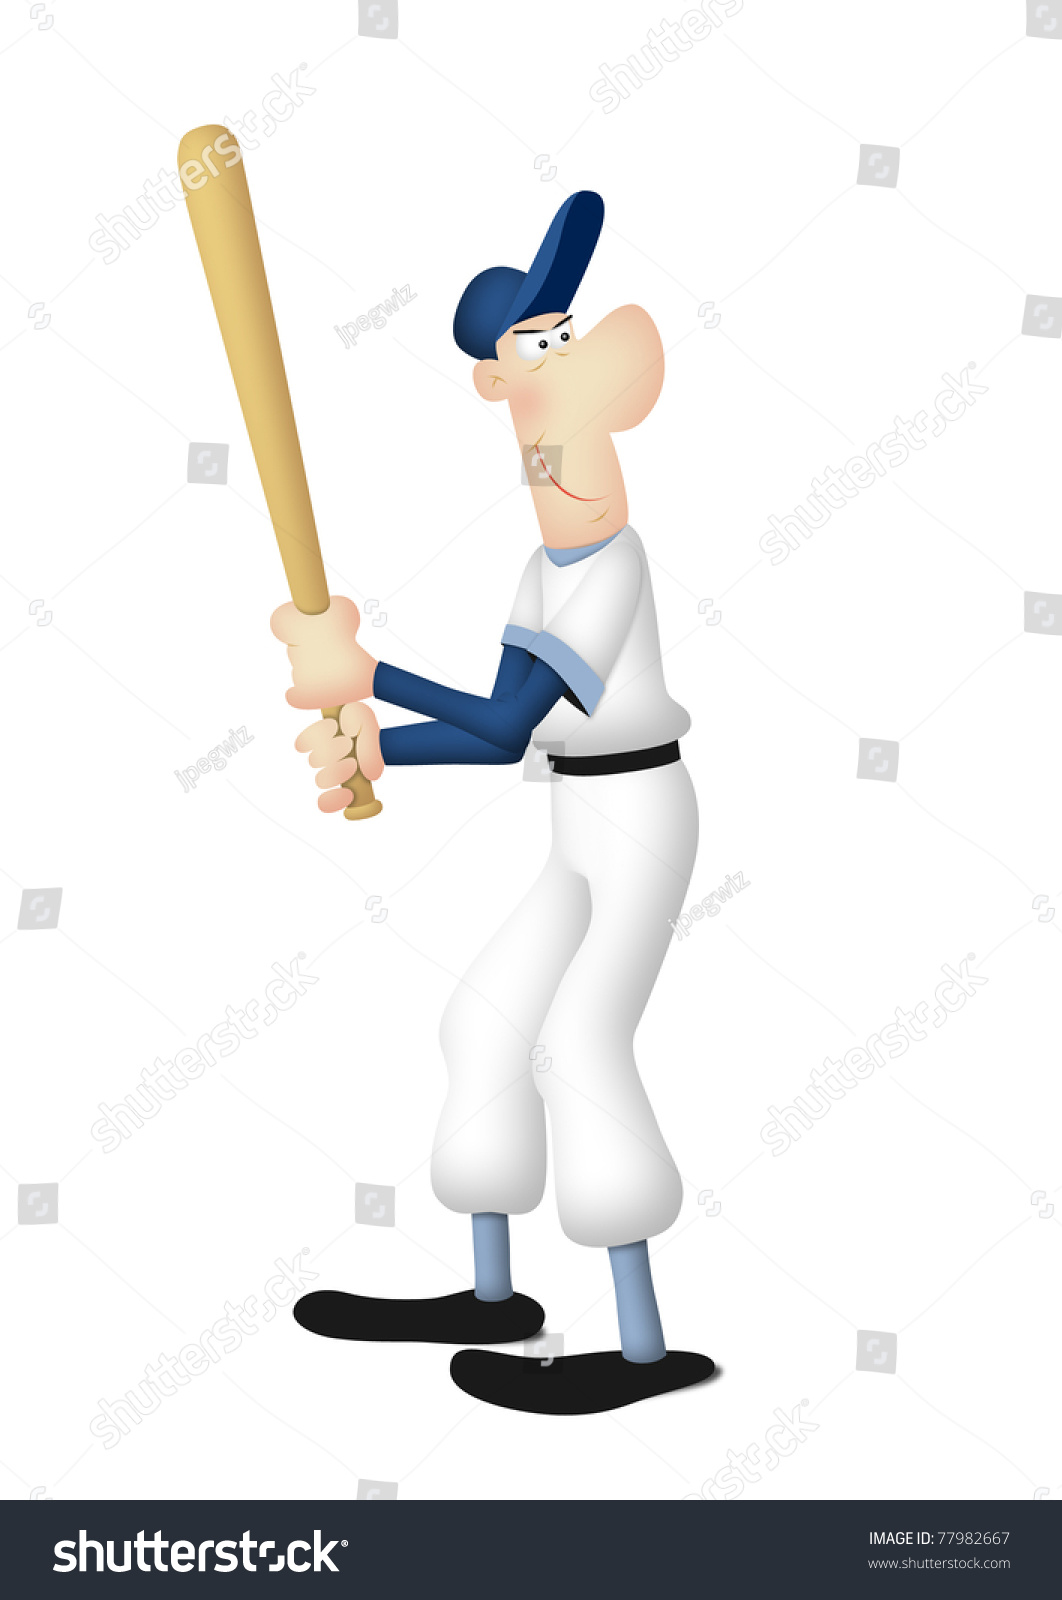 hight resolution of cartoon of baseball batter in batting pose